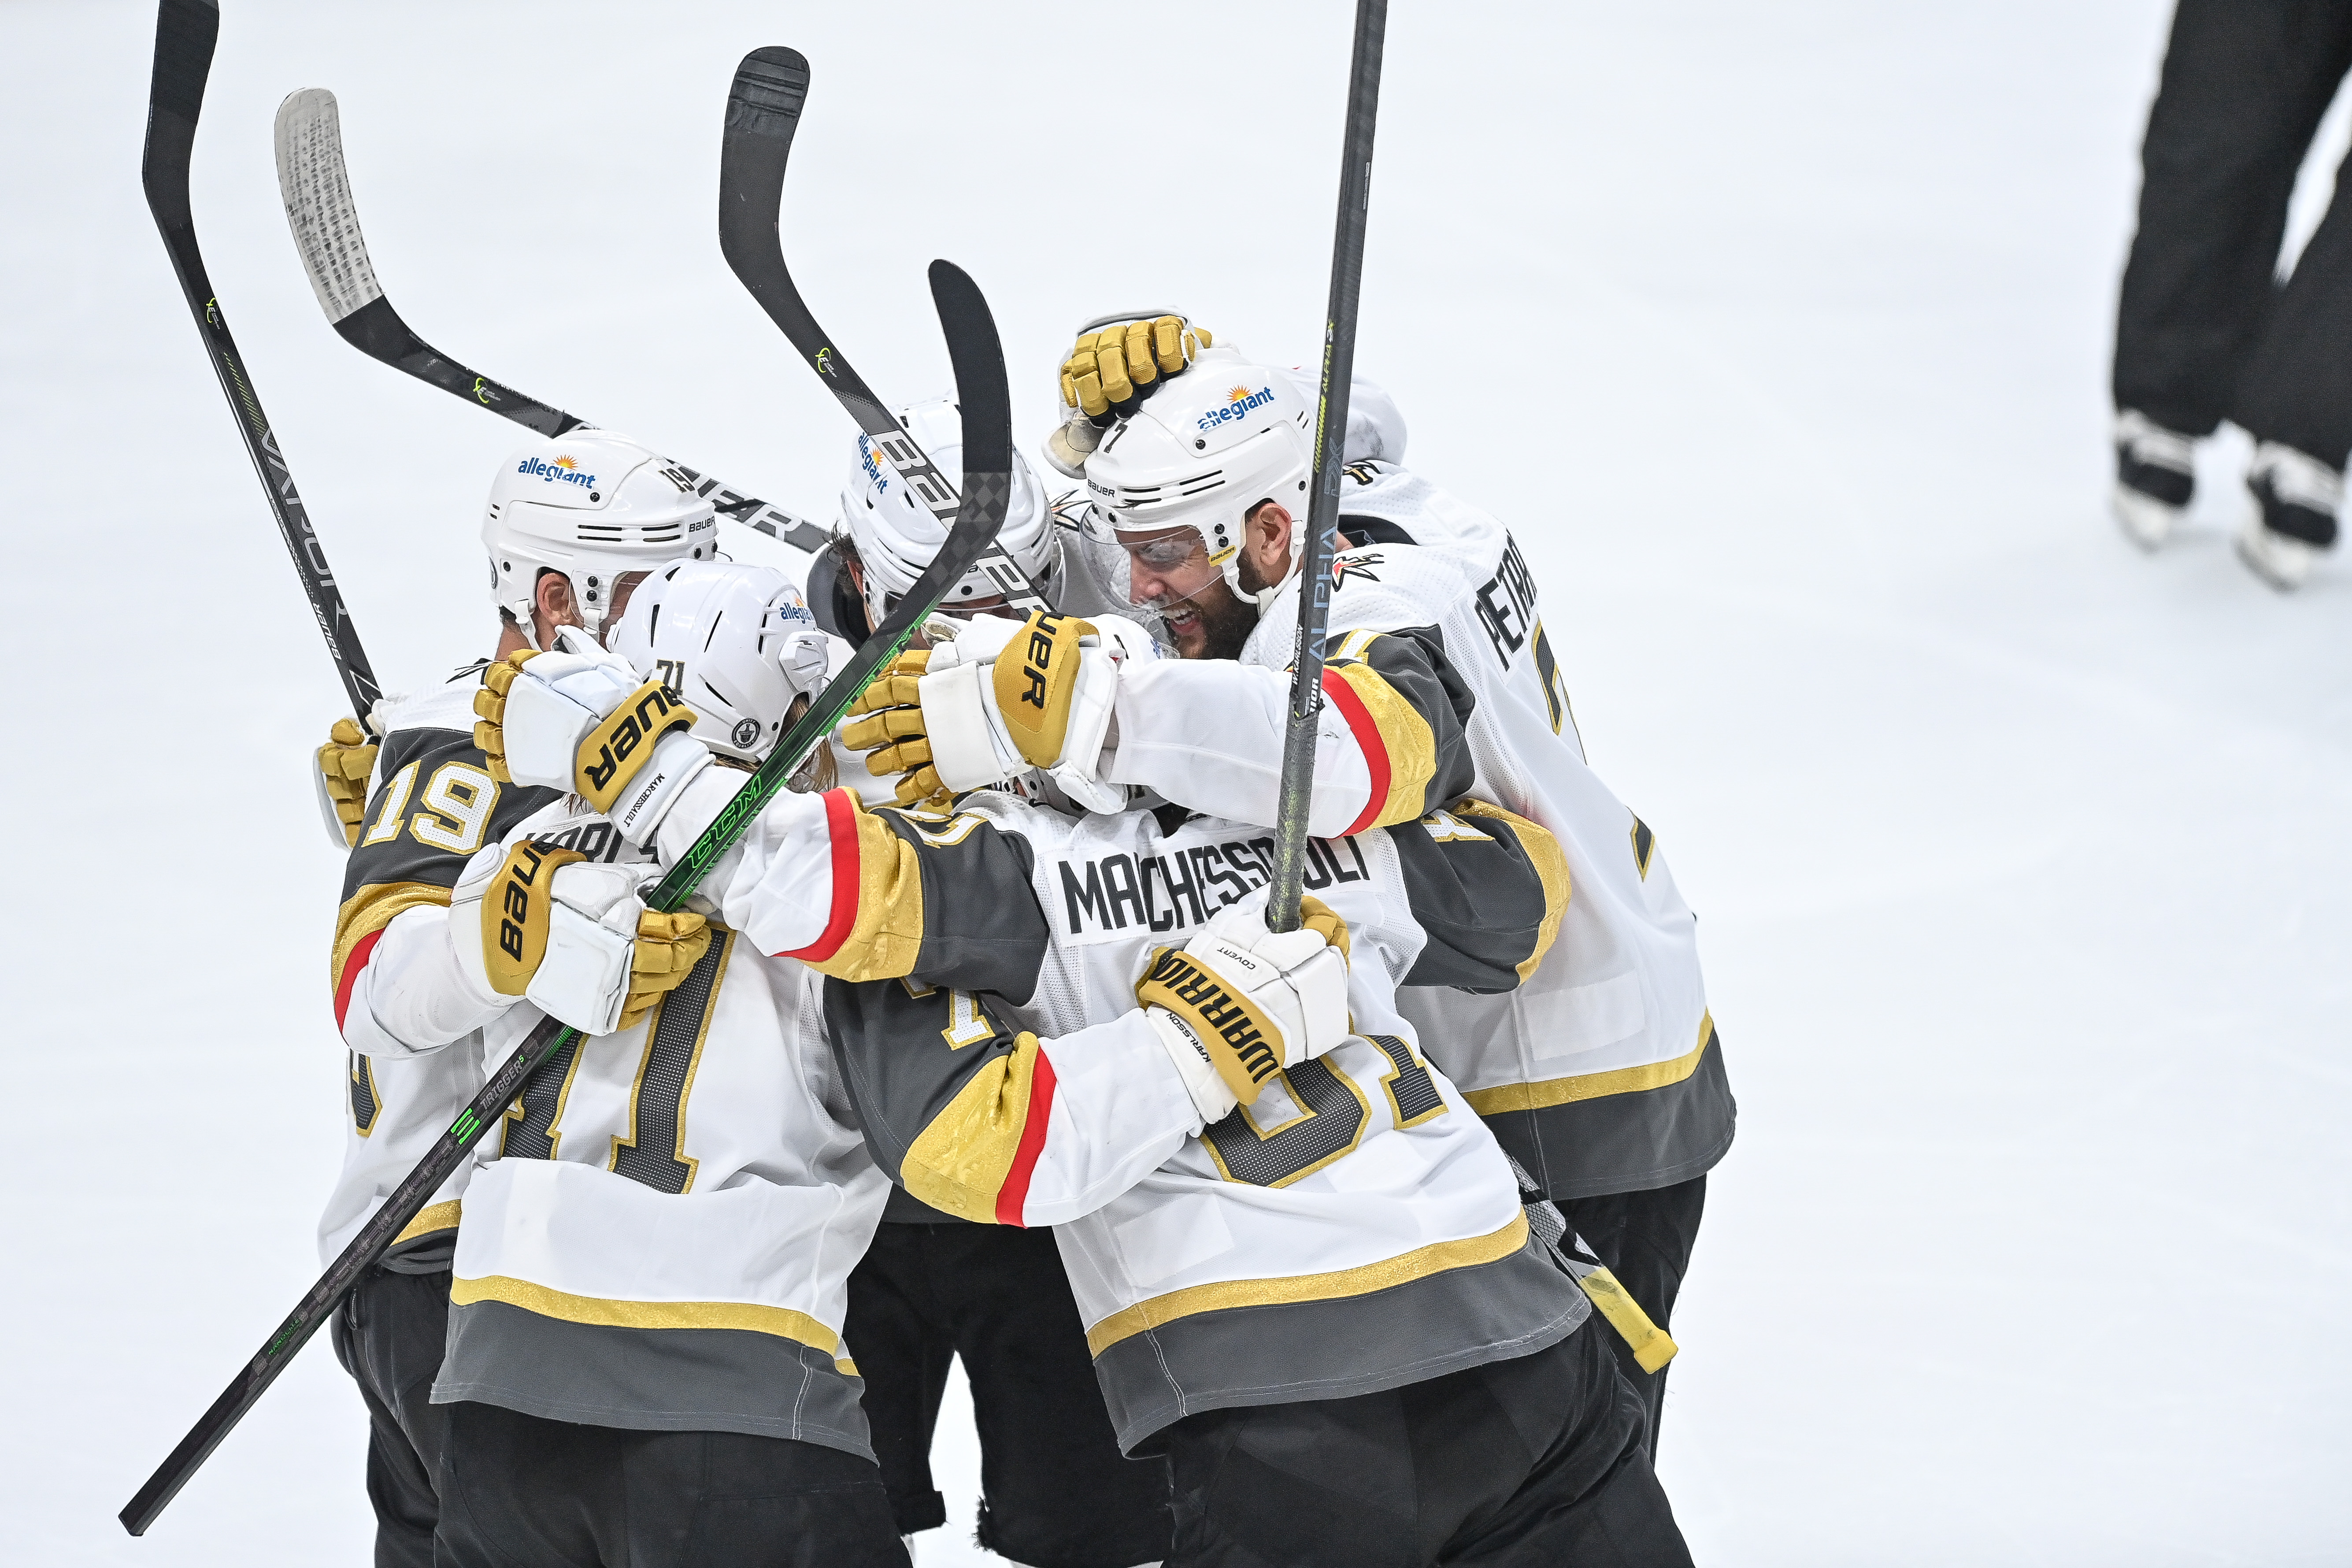 Vegas Golden Knights center Jonathan Marchessault (81), right wing Reilly Smith (19) and defenseman Alec Martinez (23) celebrate with center William Karlsson (71) after a third period Marchessault goal during a Stanley Cup Playoffs second round game between the Vegas Golden Knights and the Colorado Avalanche at Ball Arena in Denver, Colorado on June 8, 2021.